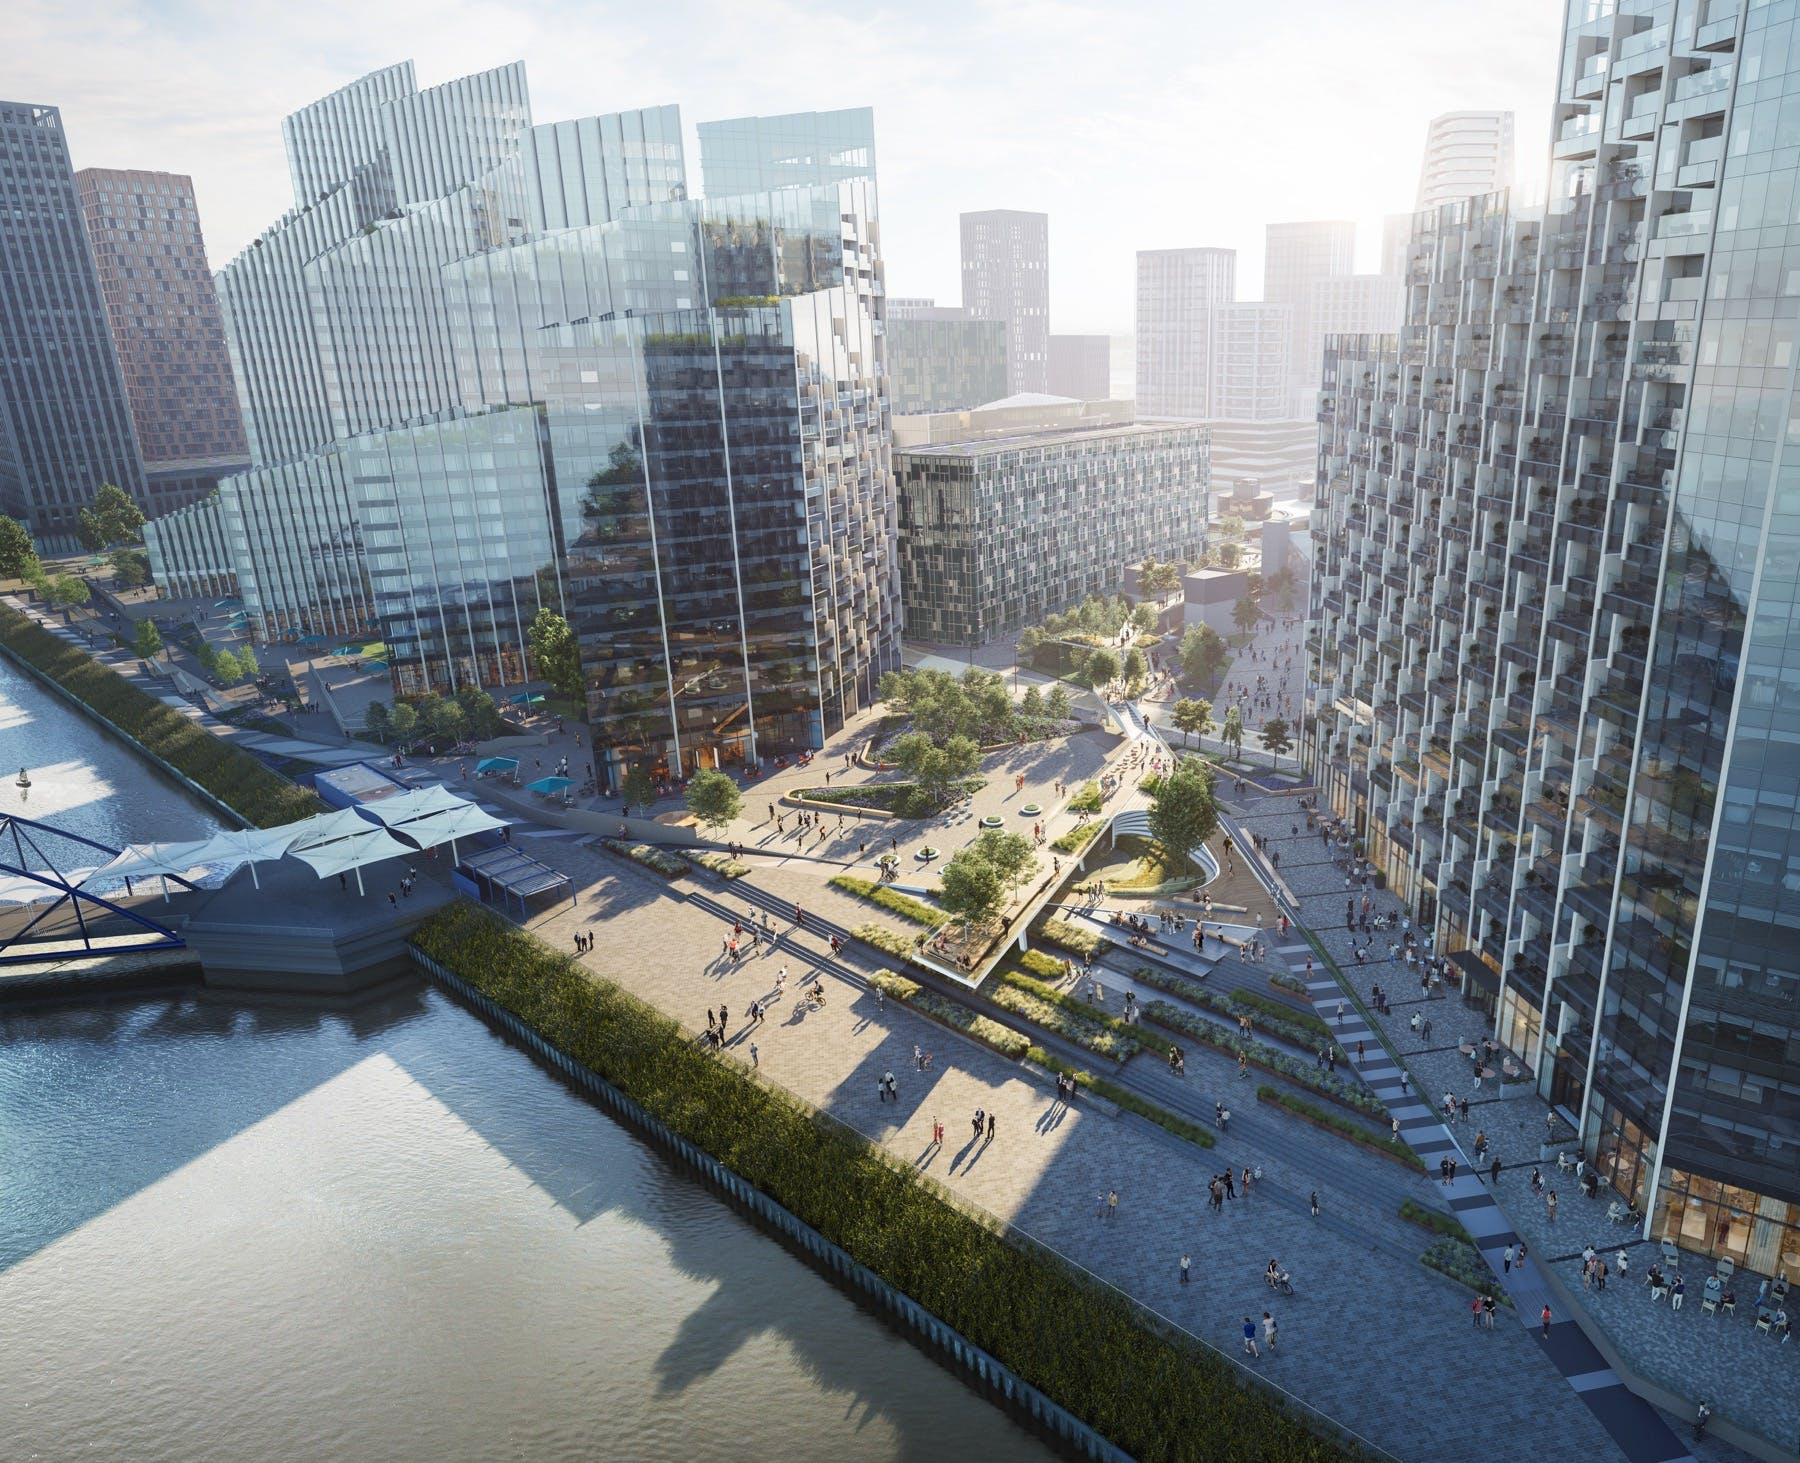 First phase of Diller Scofidio + Renfro's London linear park